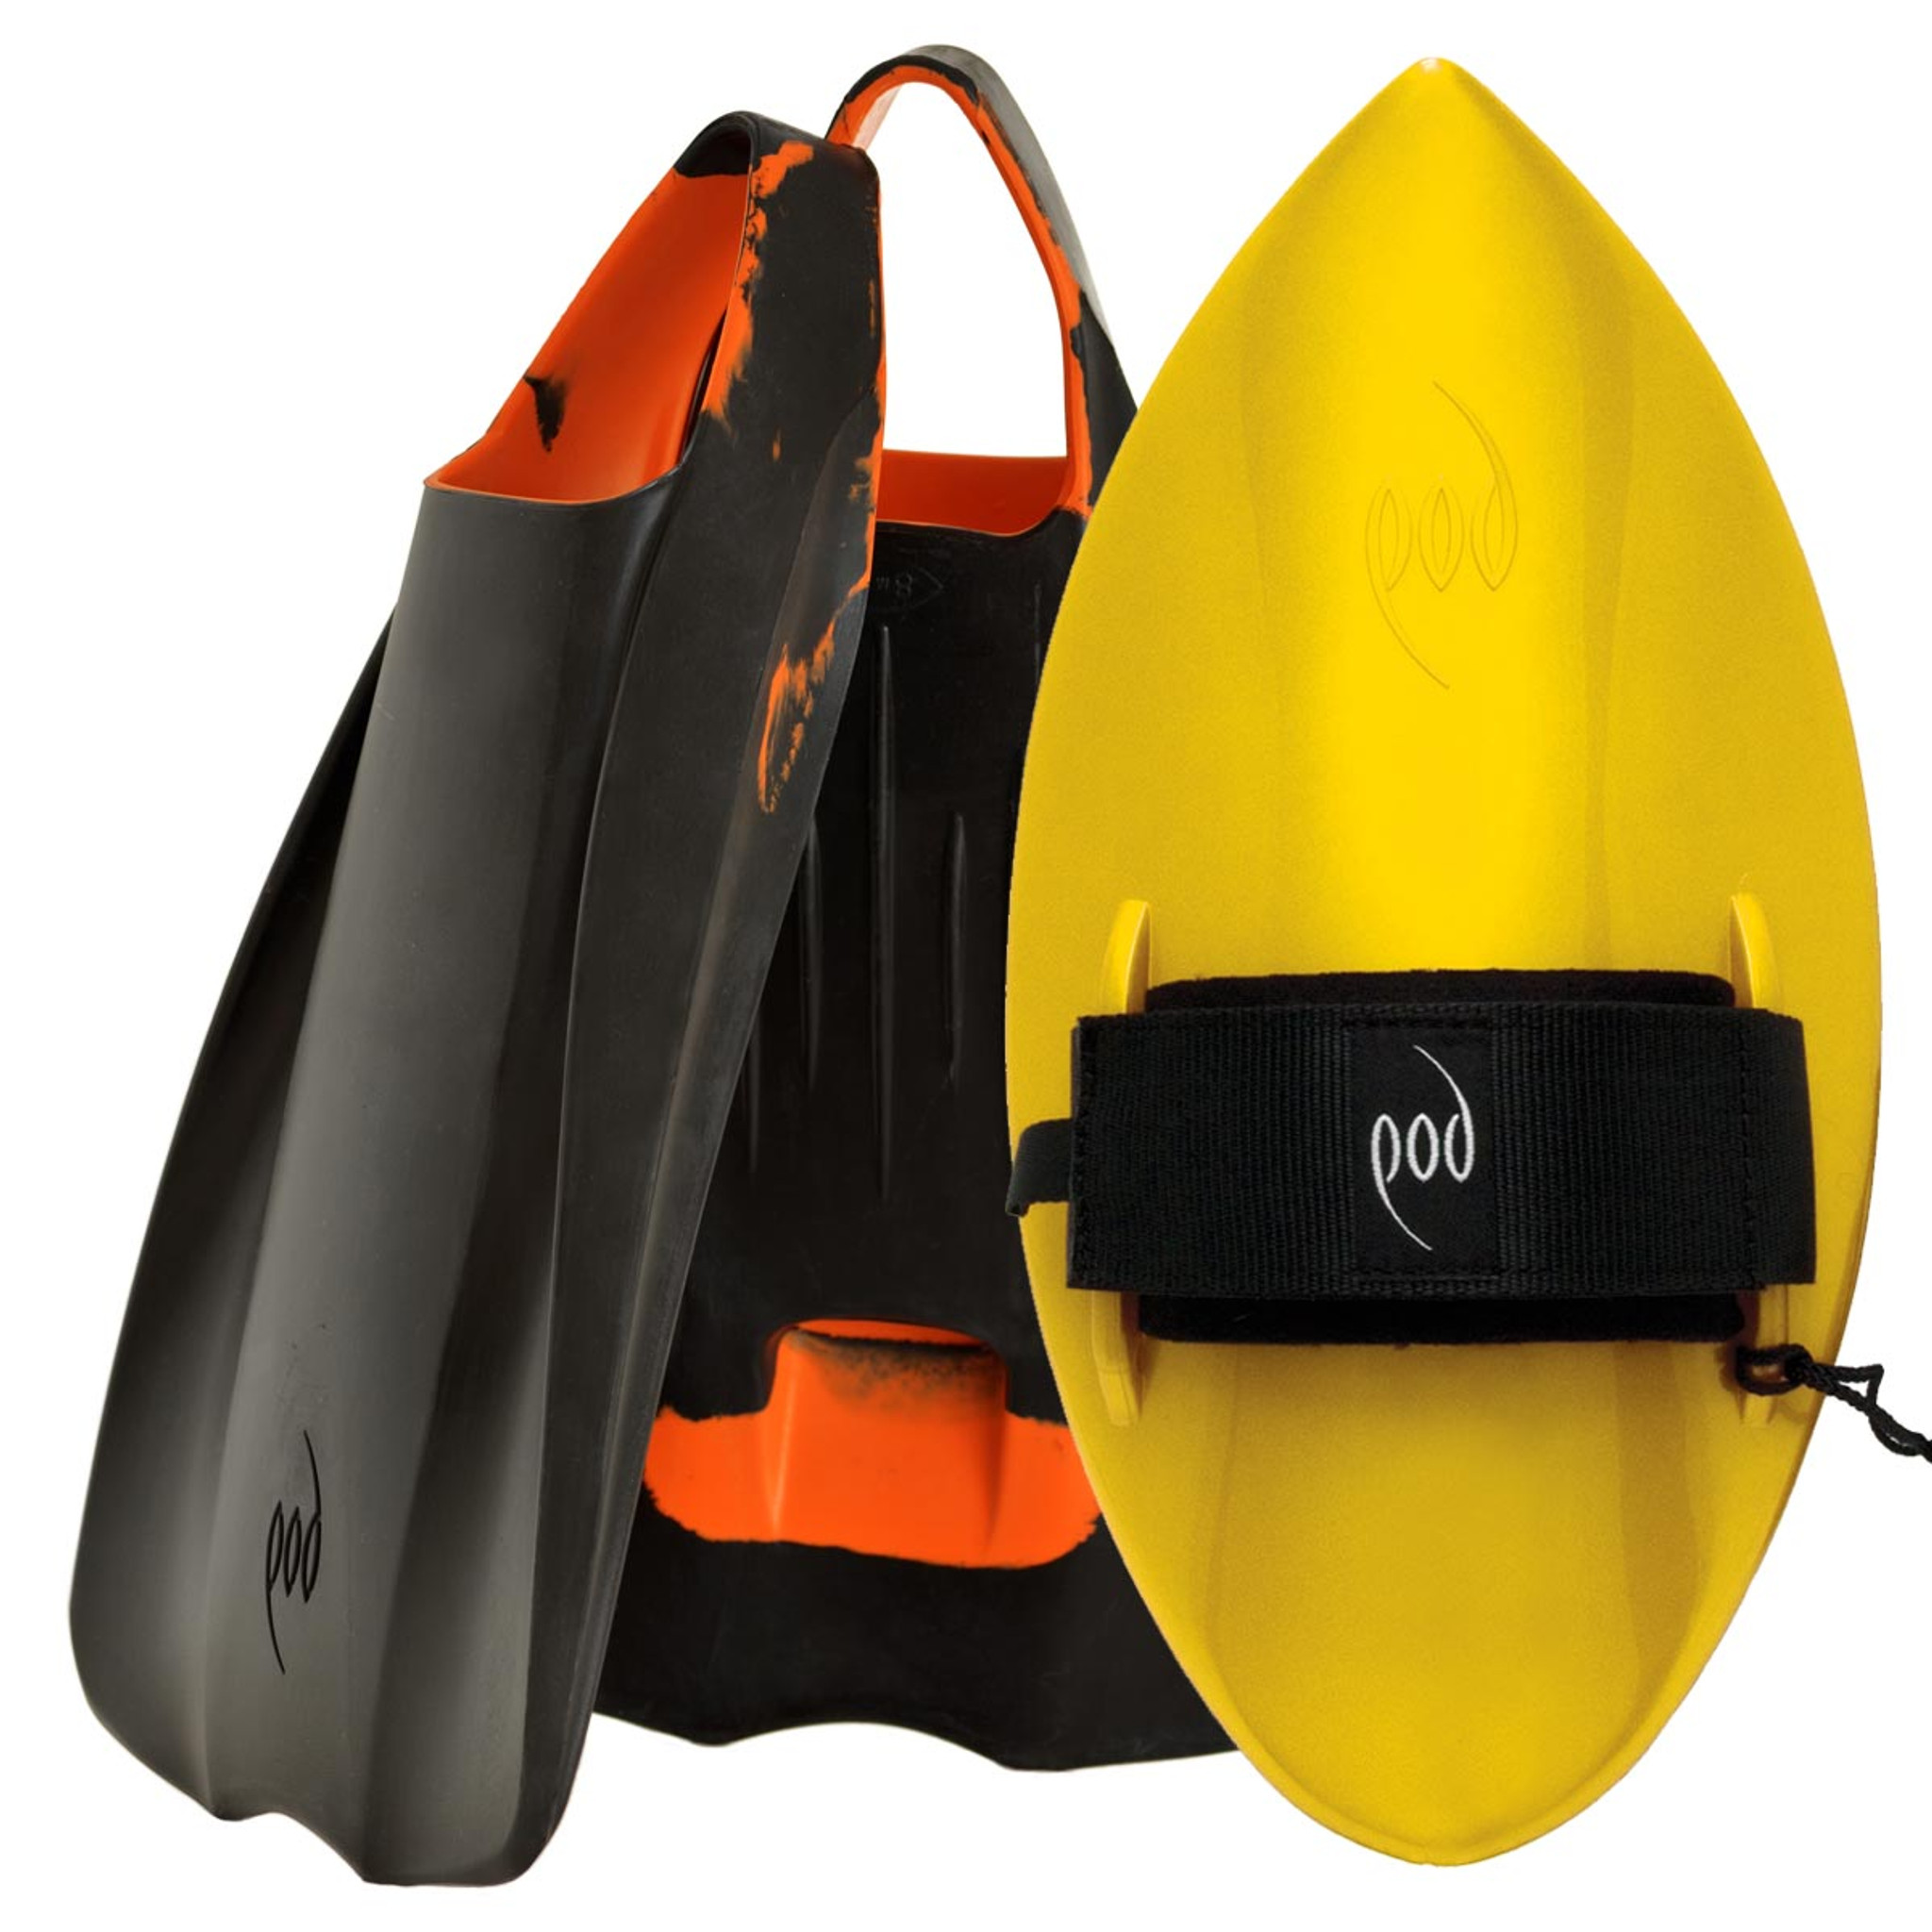 POD Fins PF1s Black/Orange - Yellow POD Handboard